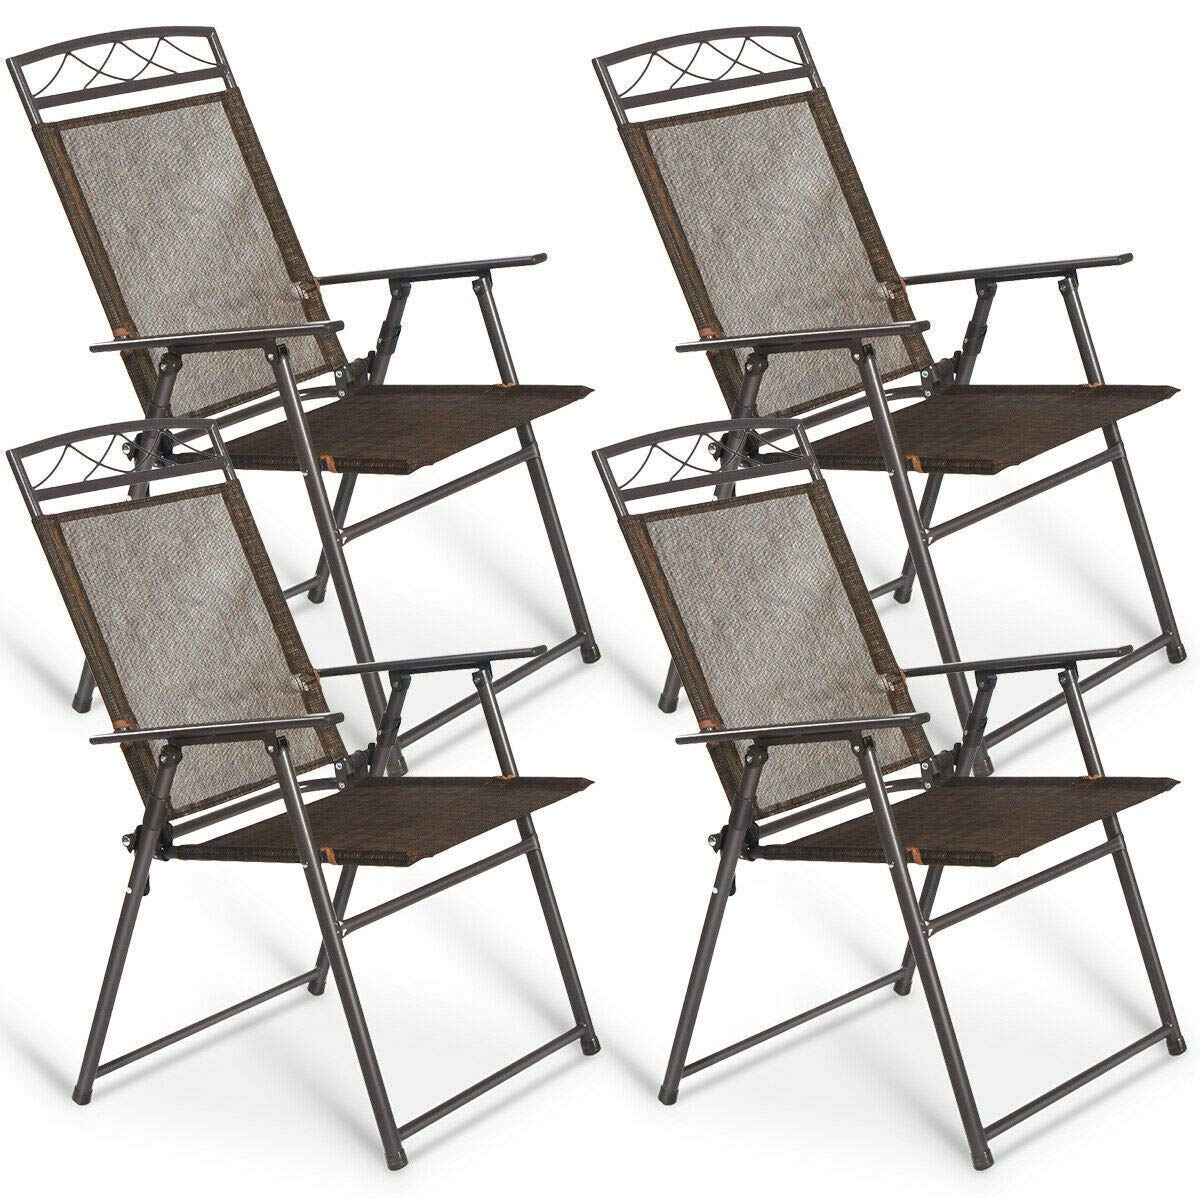 Patio Folding Sling Chairs Steel Textilene Camping Deck Garden Pool Set of 4